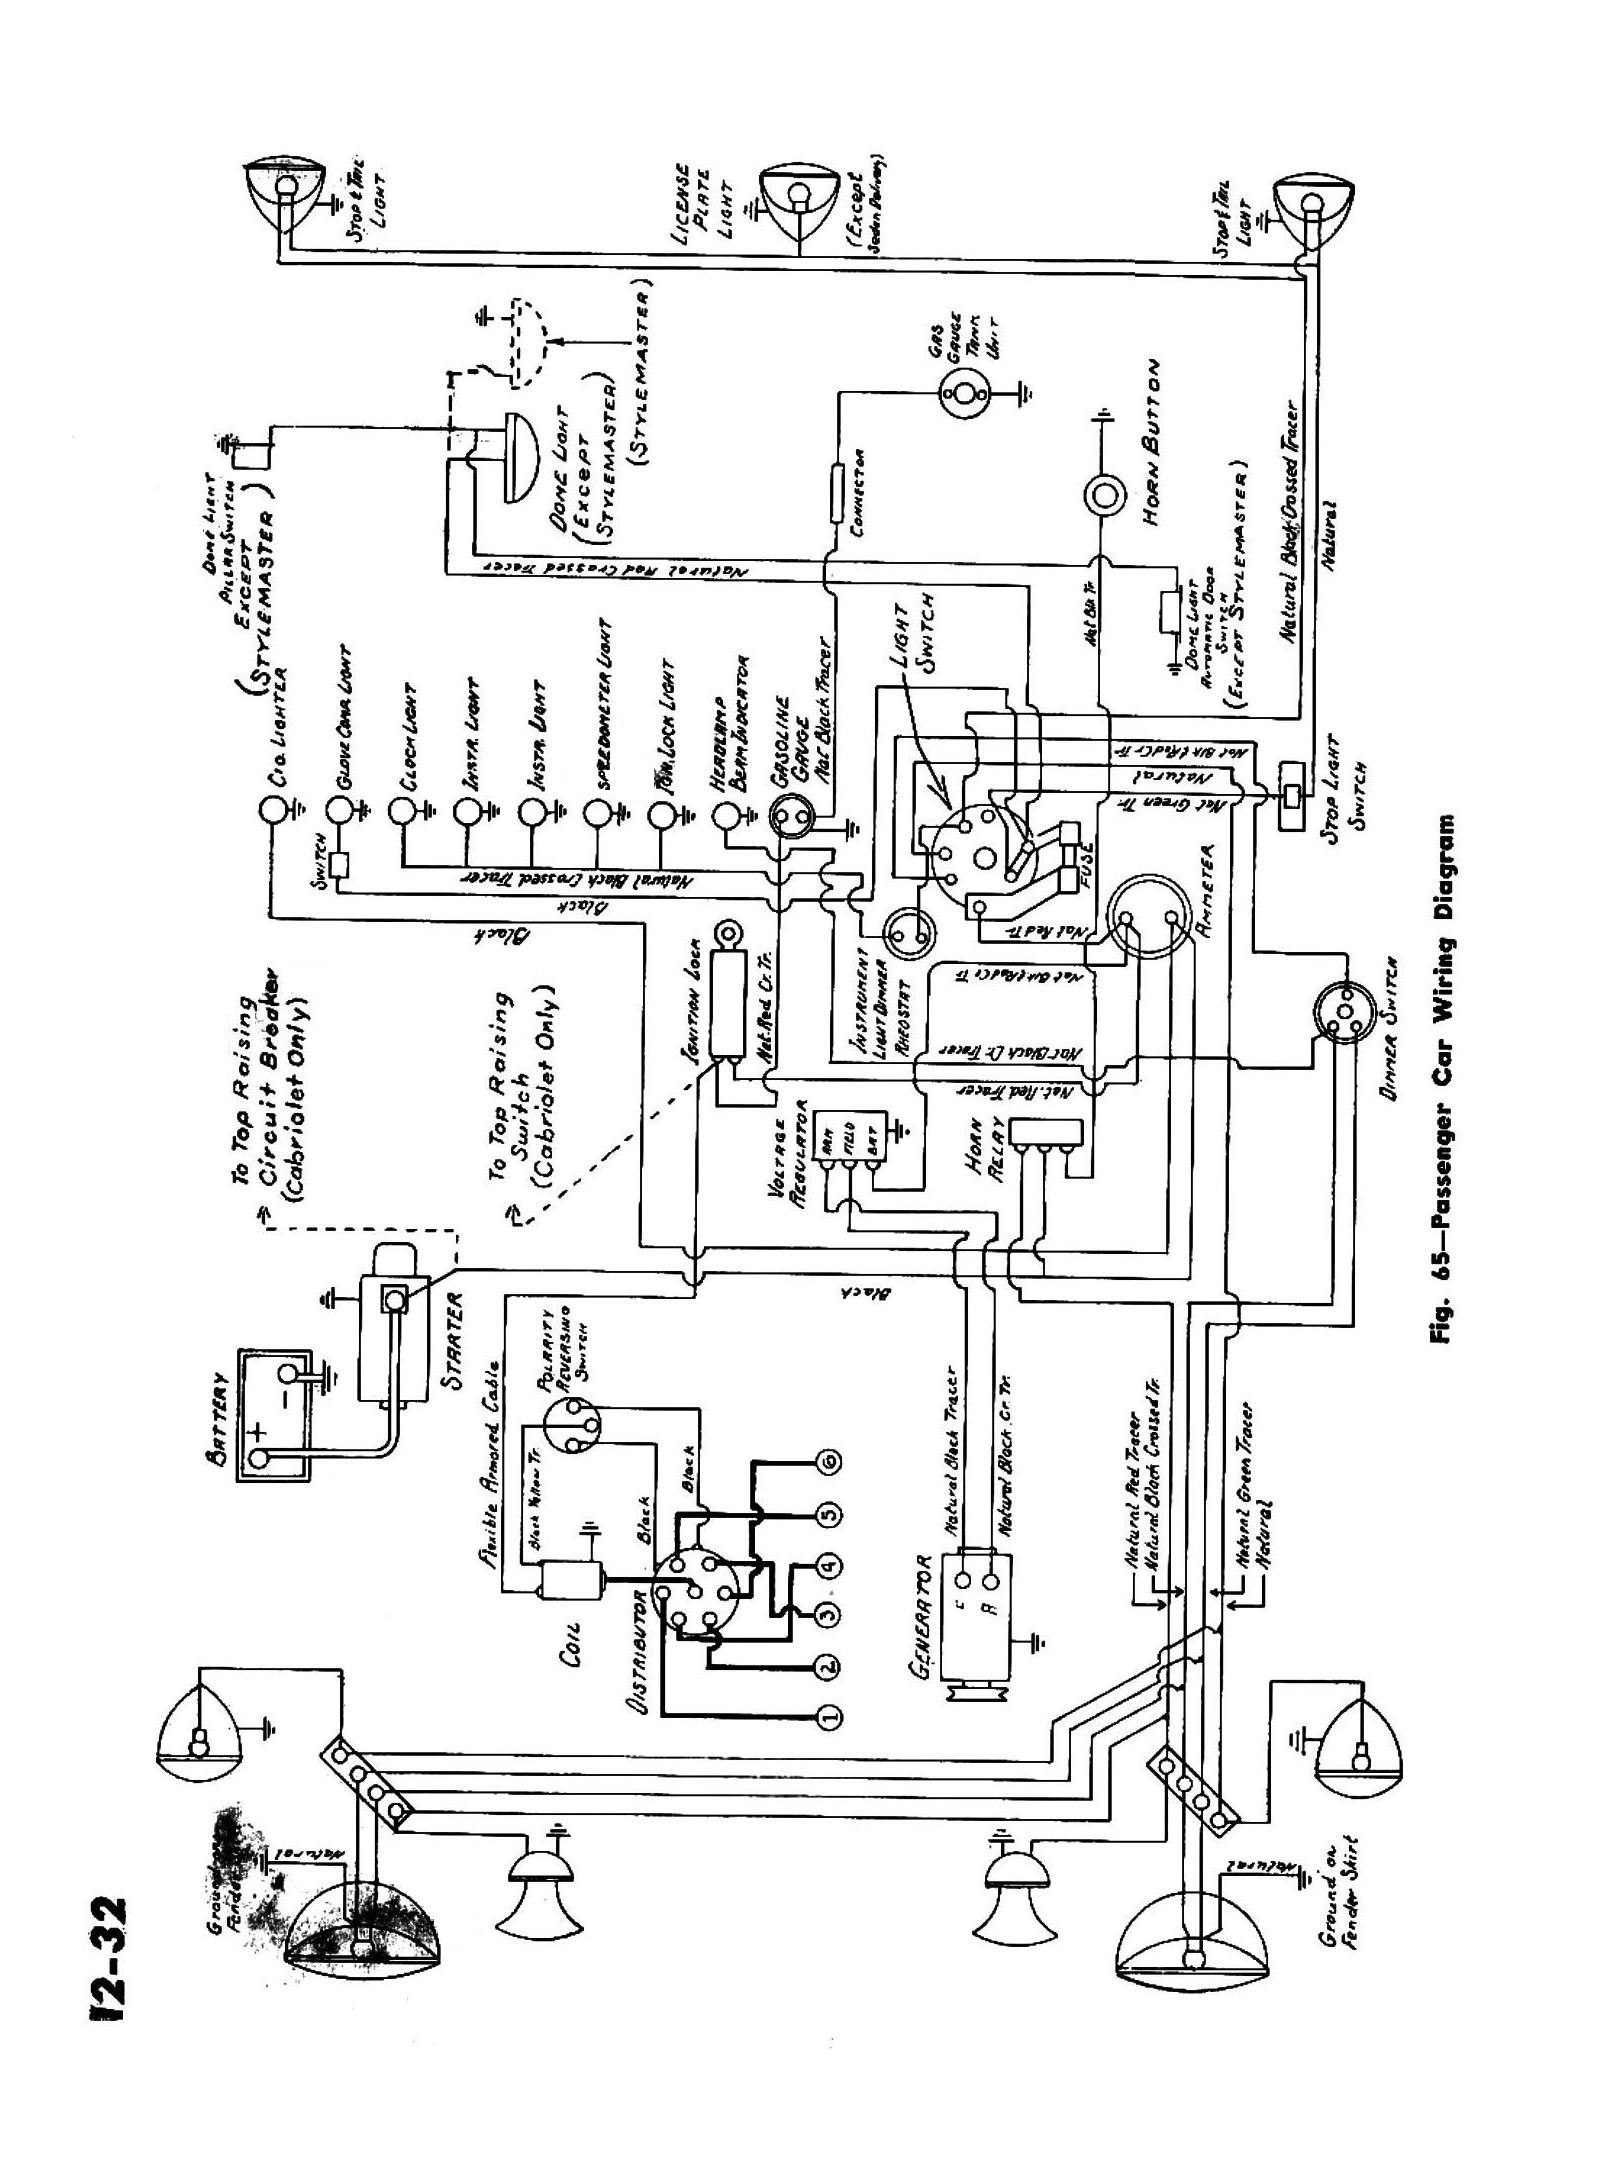 Wiring Schematics For Cars Worksheet And Diagram Car Alternator Chevy Diagrams Rh Oldcarmanualproject Com Kenwood Stereo